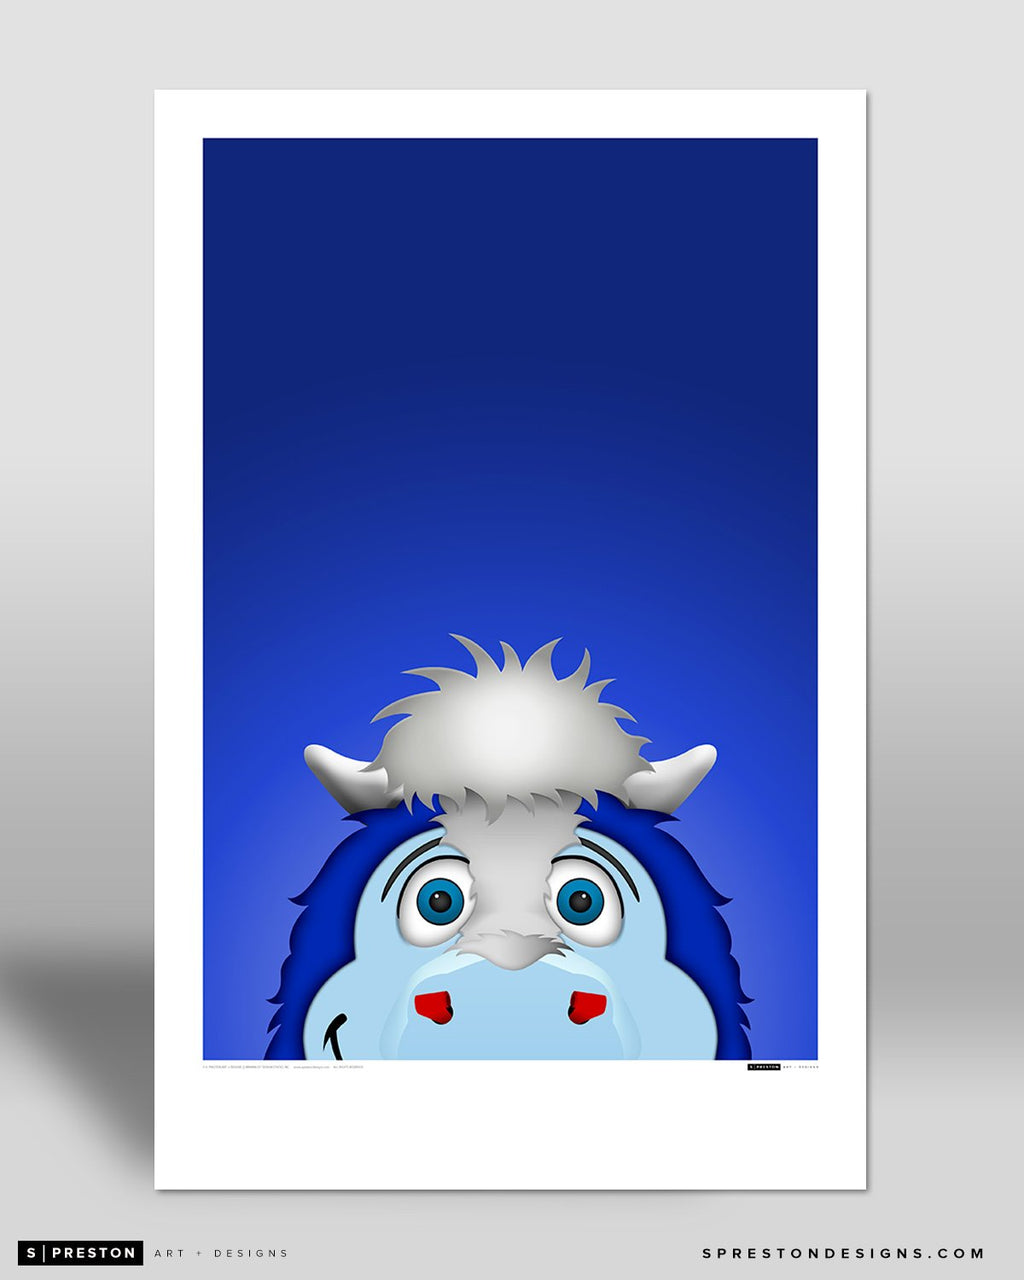 Minimalist Blue Art Poster Indianapolis Colts Mascot - S. Preston